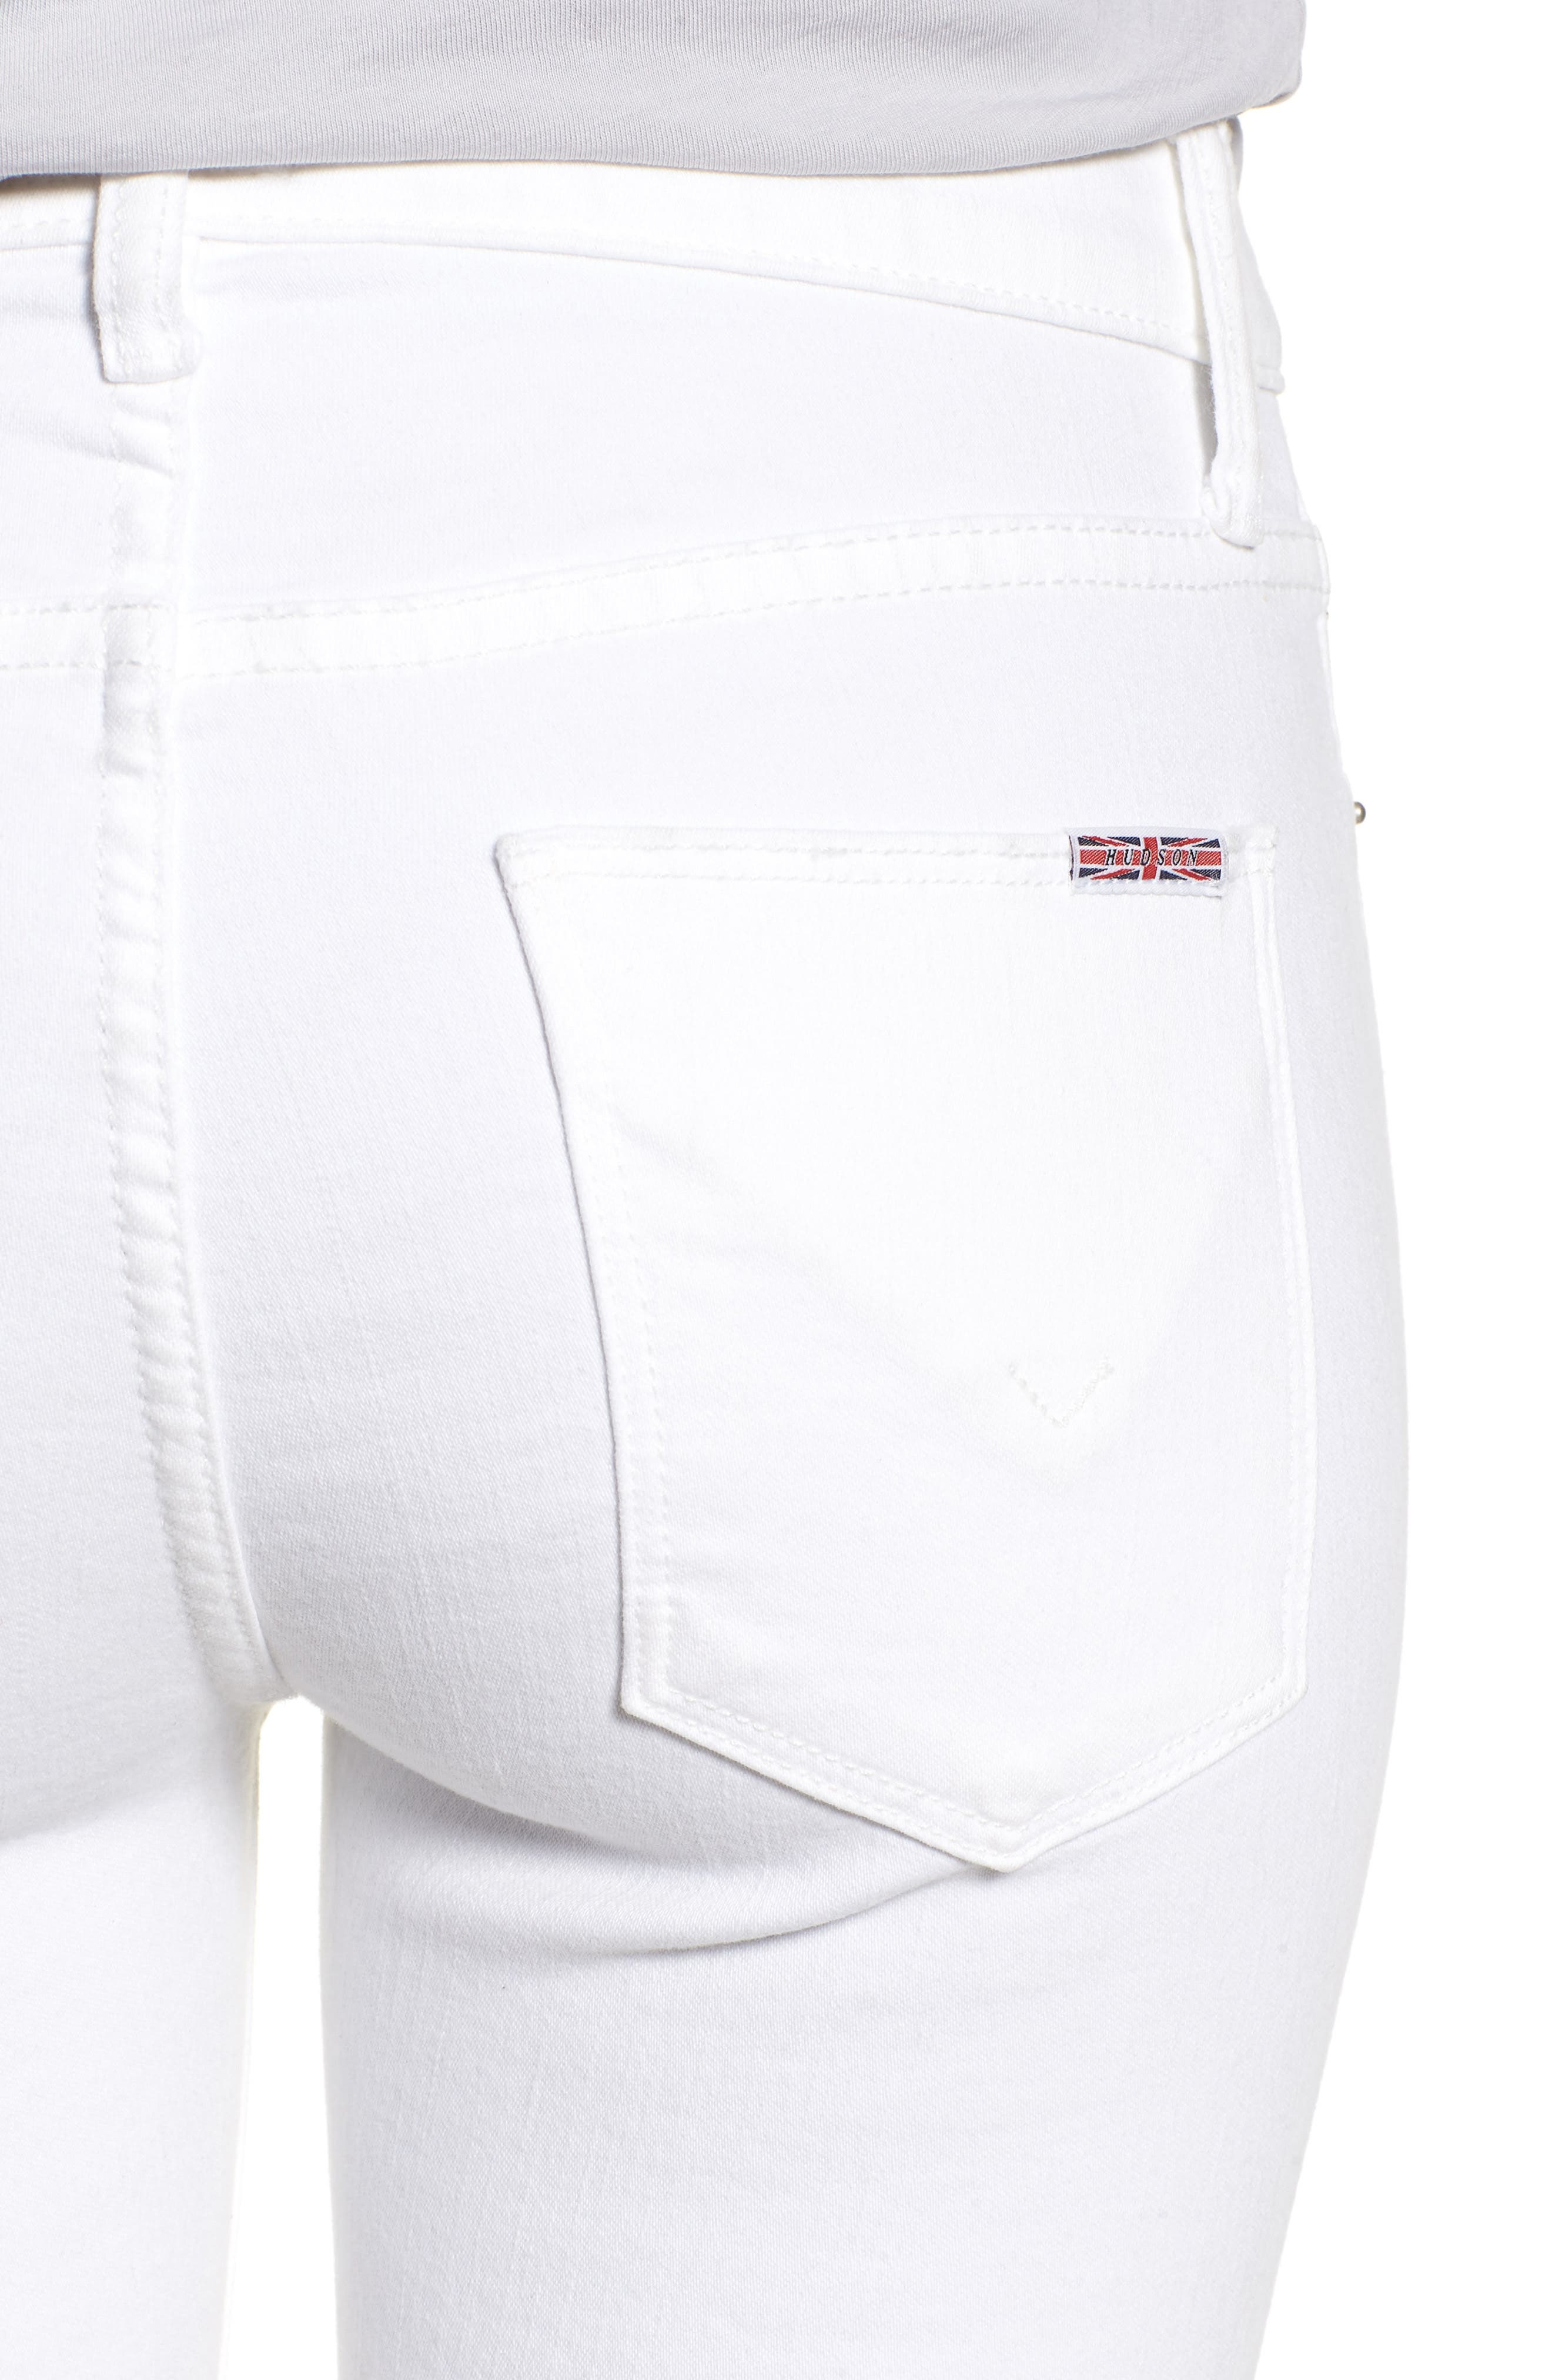 Amelia Cutoff Knee Shorts,                             Alternate thumbnail 4, color,                             OPTICAL WHITE